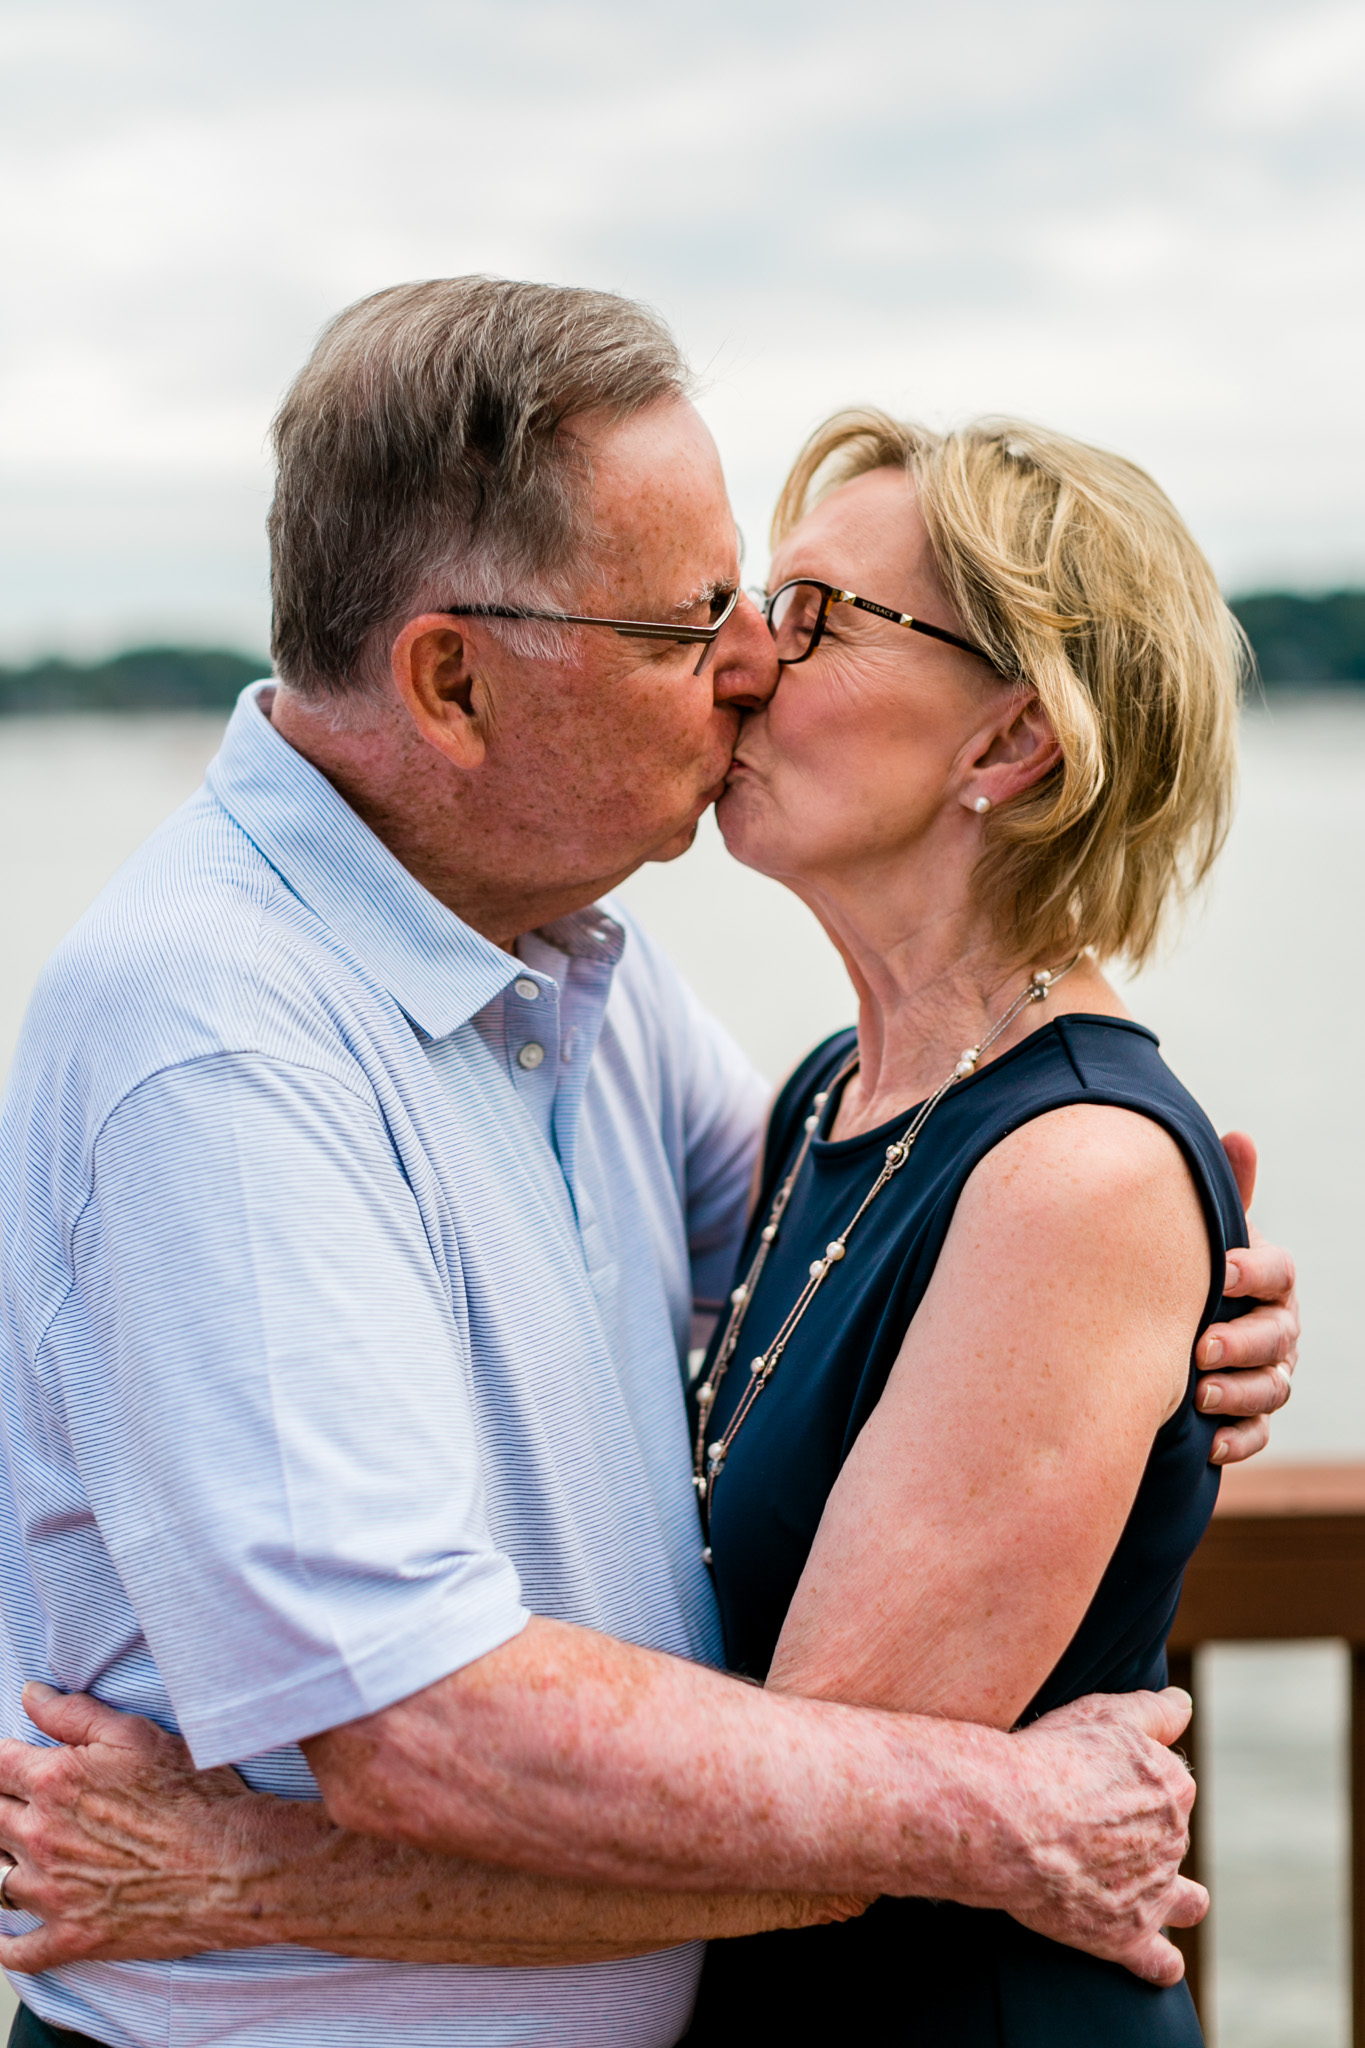 50th wedding anniversary of couple kissing | Raleigh Family Photographer | By G. Lin Photography